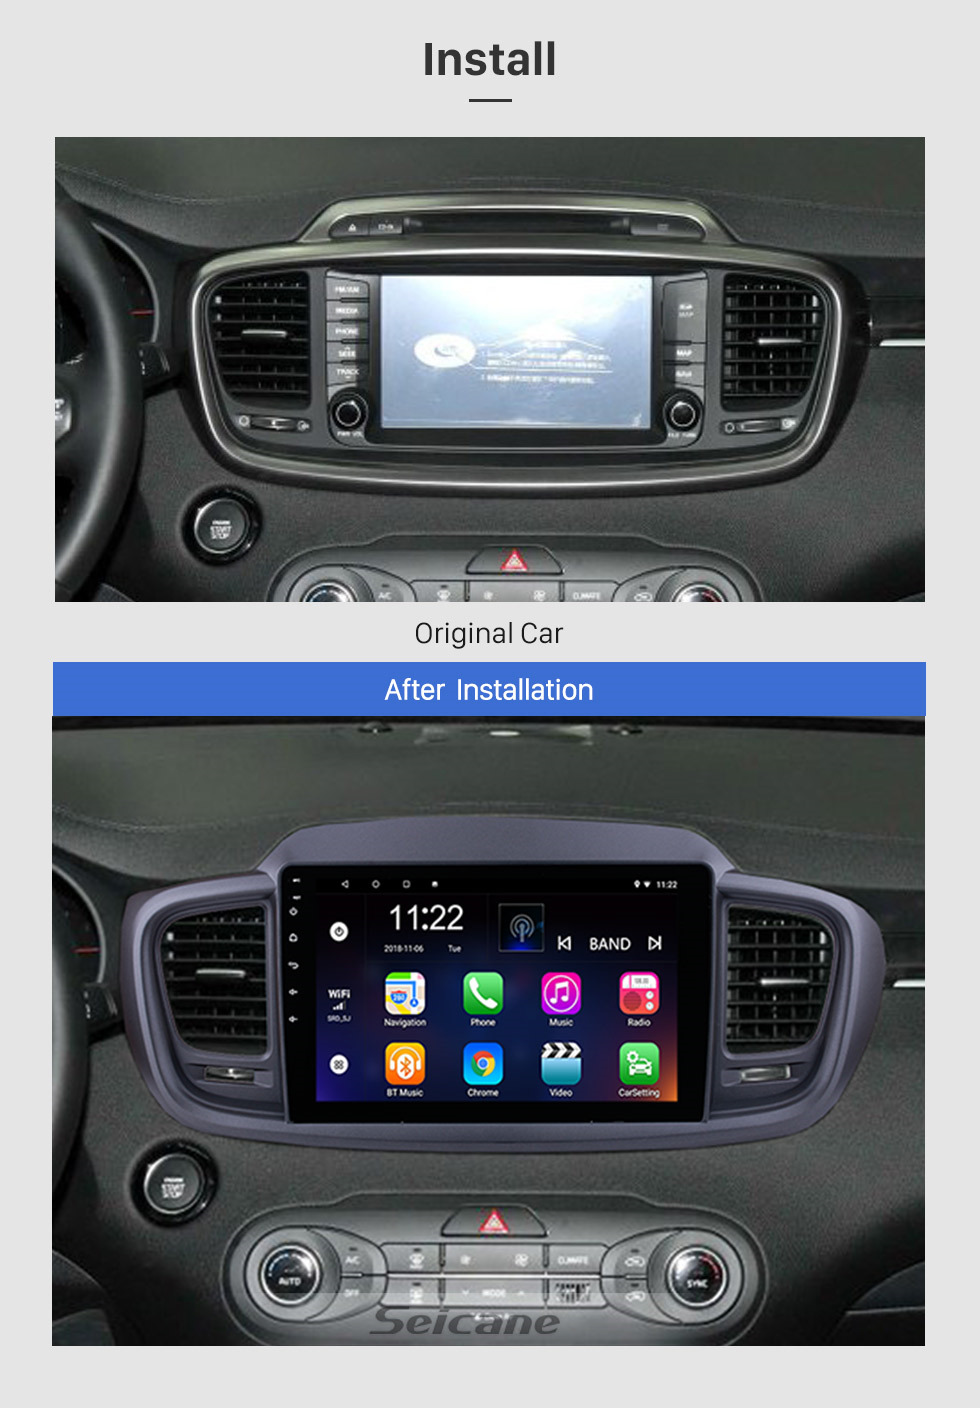 Seicane 10.1 inch Android 8.1 1024*600 Touch Screen Radio Car Multimedia Player For 2015 2016 KIA SORENTO GPS Navigation upgrade Head unit with 3G WiFi Radio Bluetooth Music USB Mirror Link support DVR OBD2 Backup Camera Steering Wheel Control TPMS